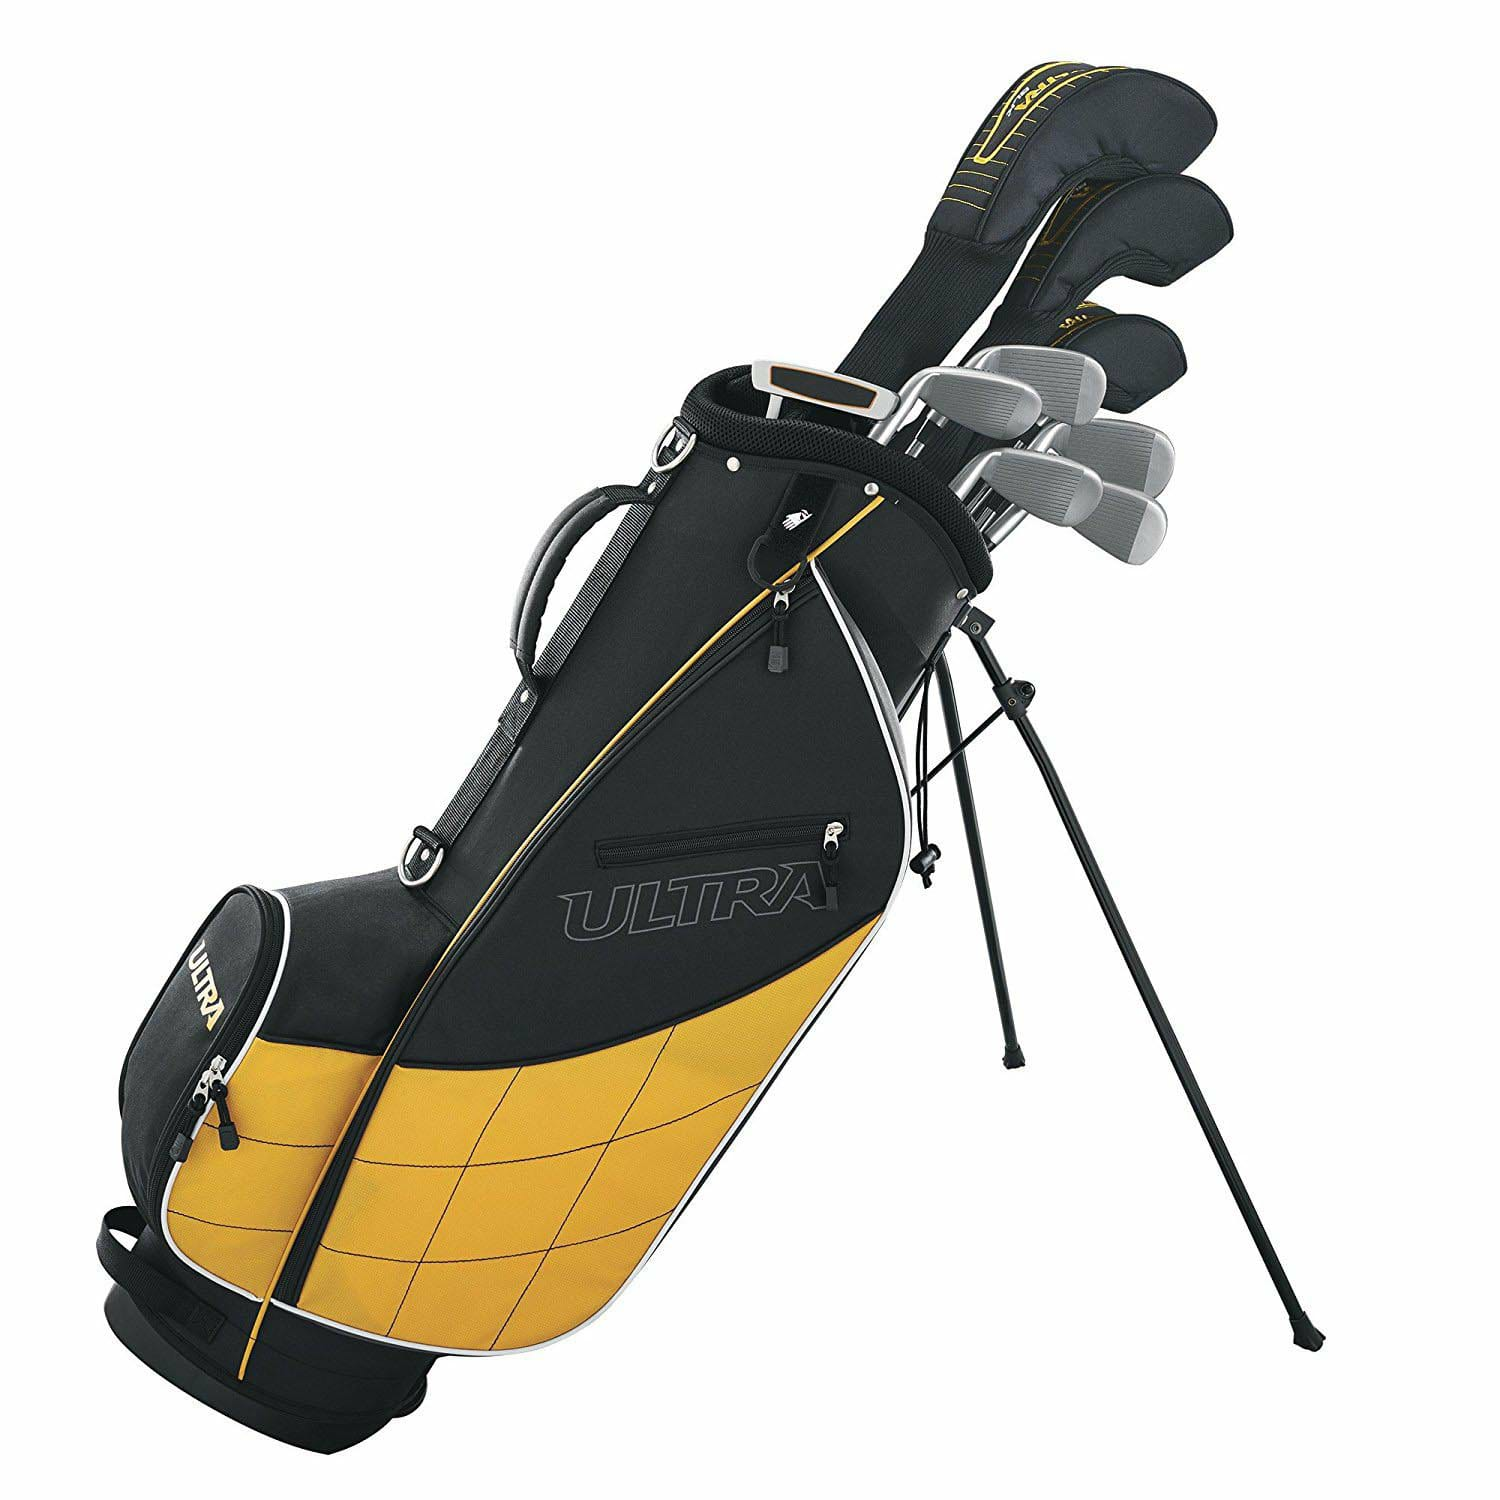 Wilson Ultra Men's Complete 13 Piece Right Handed Golf Club Set & Stand